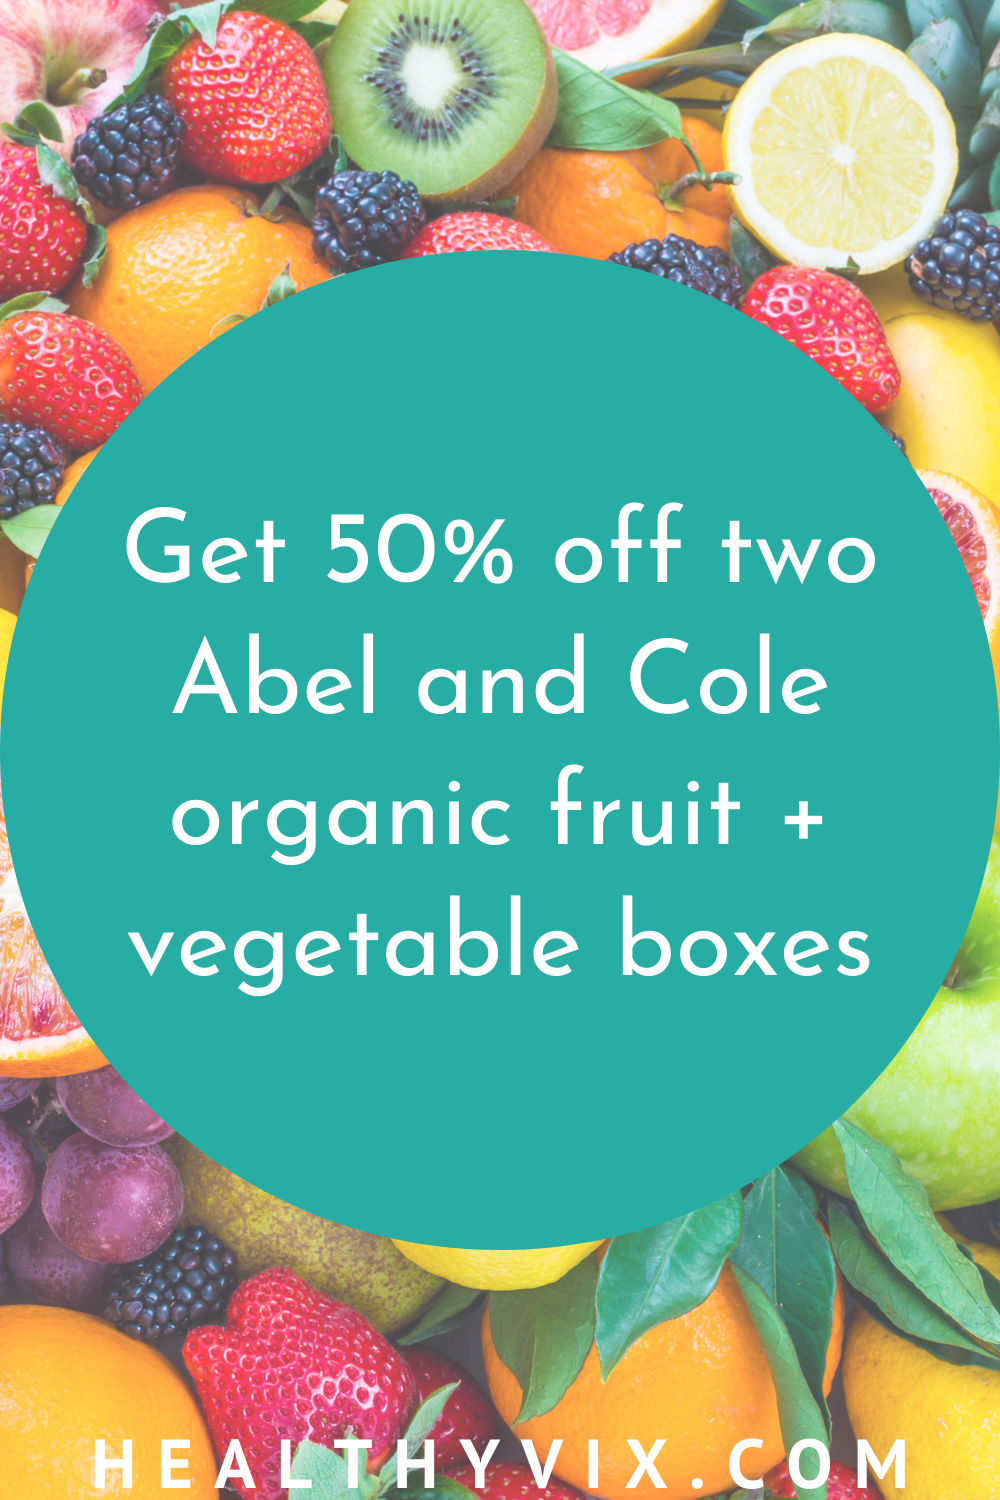 Get 50% off two Abel and Cole organic fruit + vegetable boxes